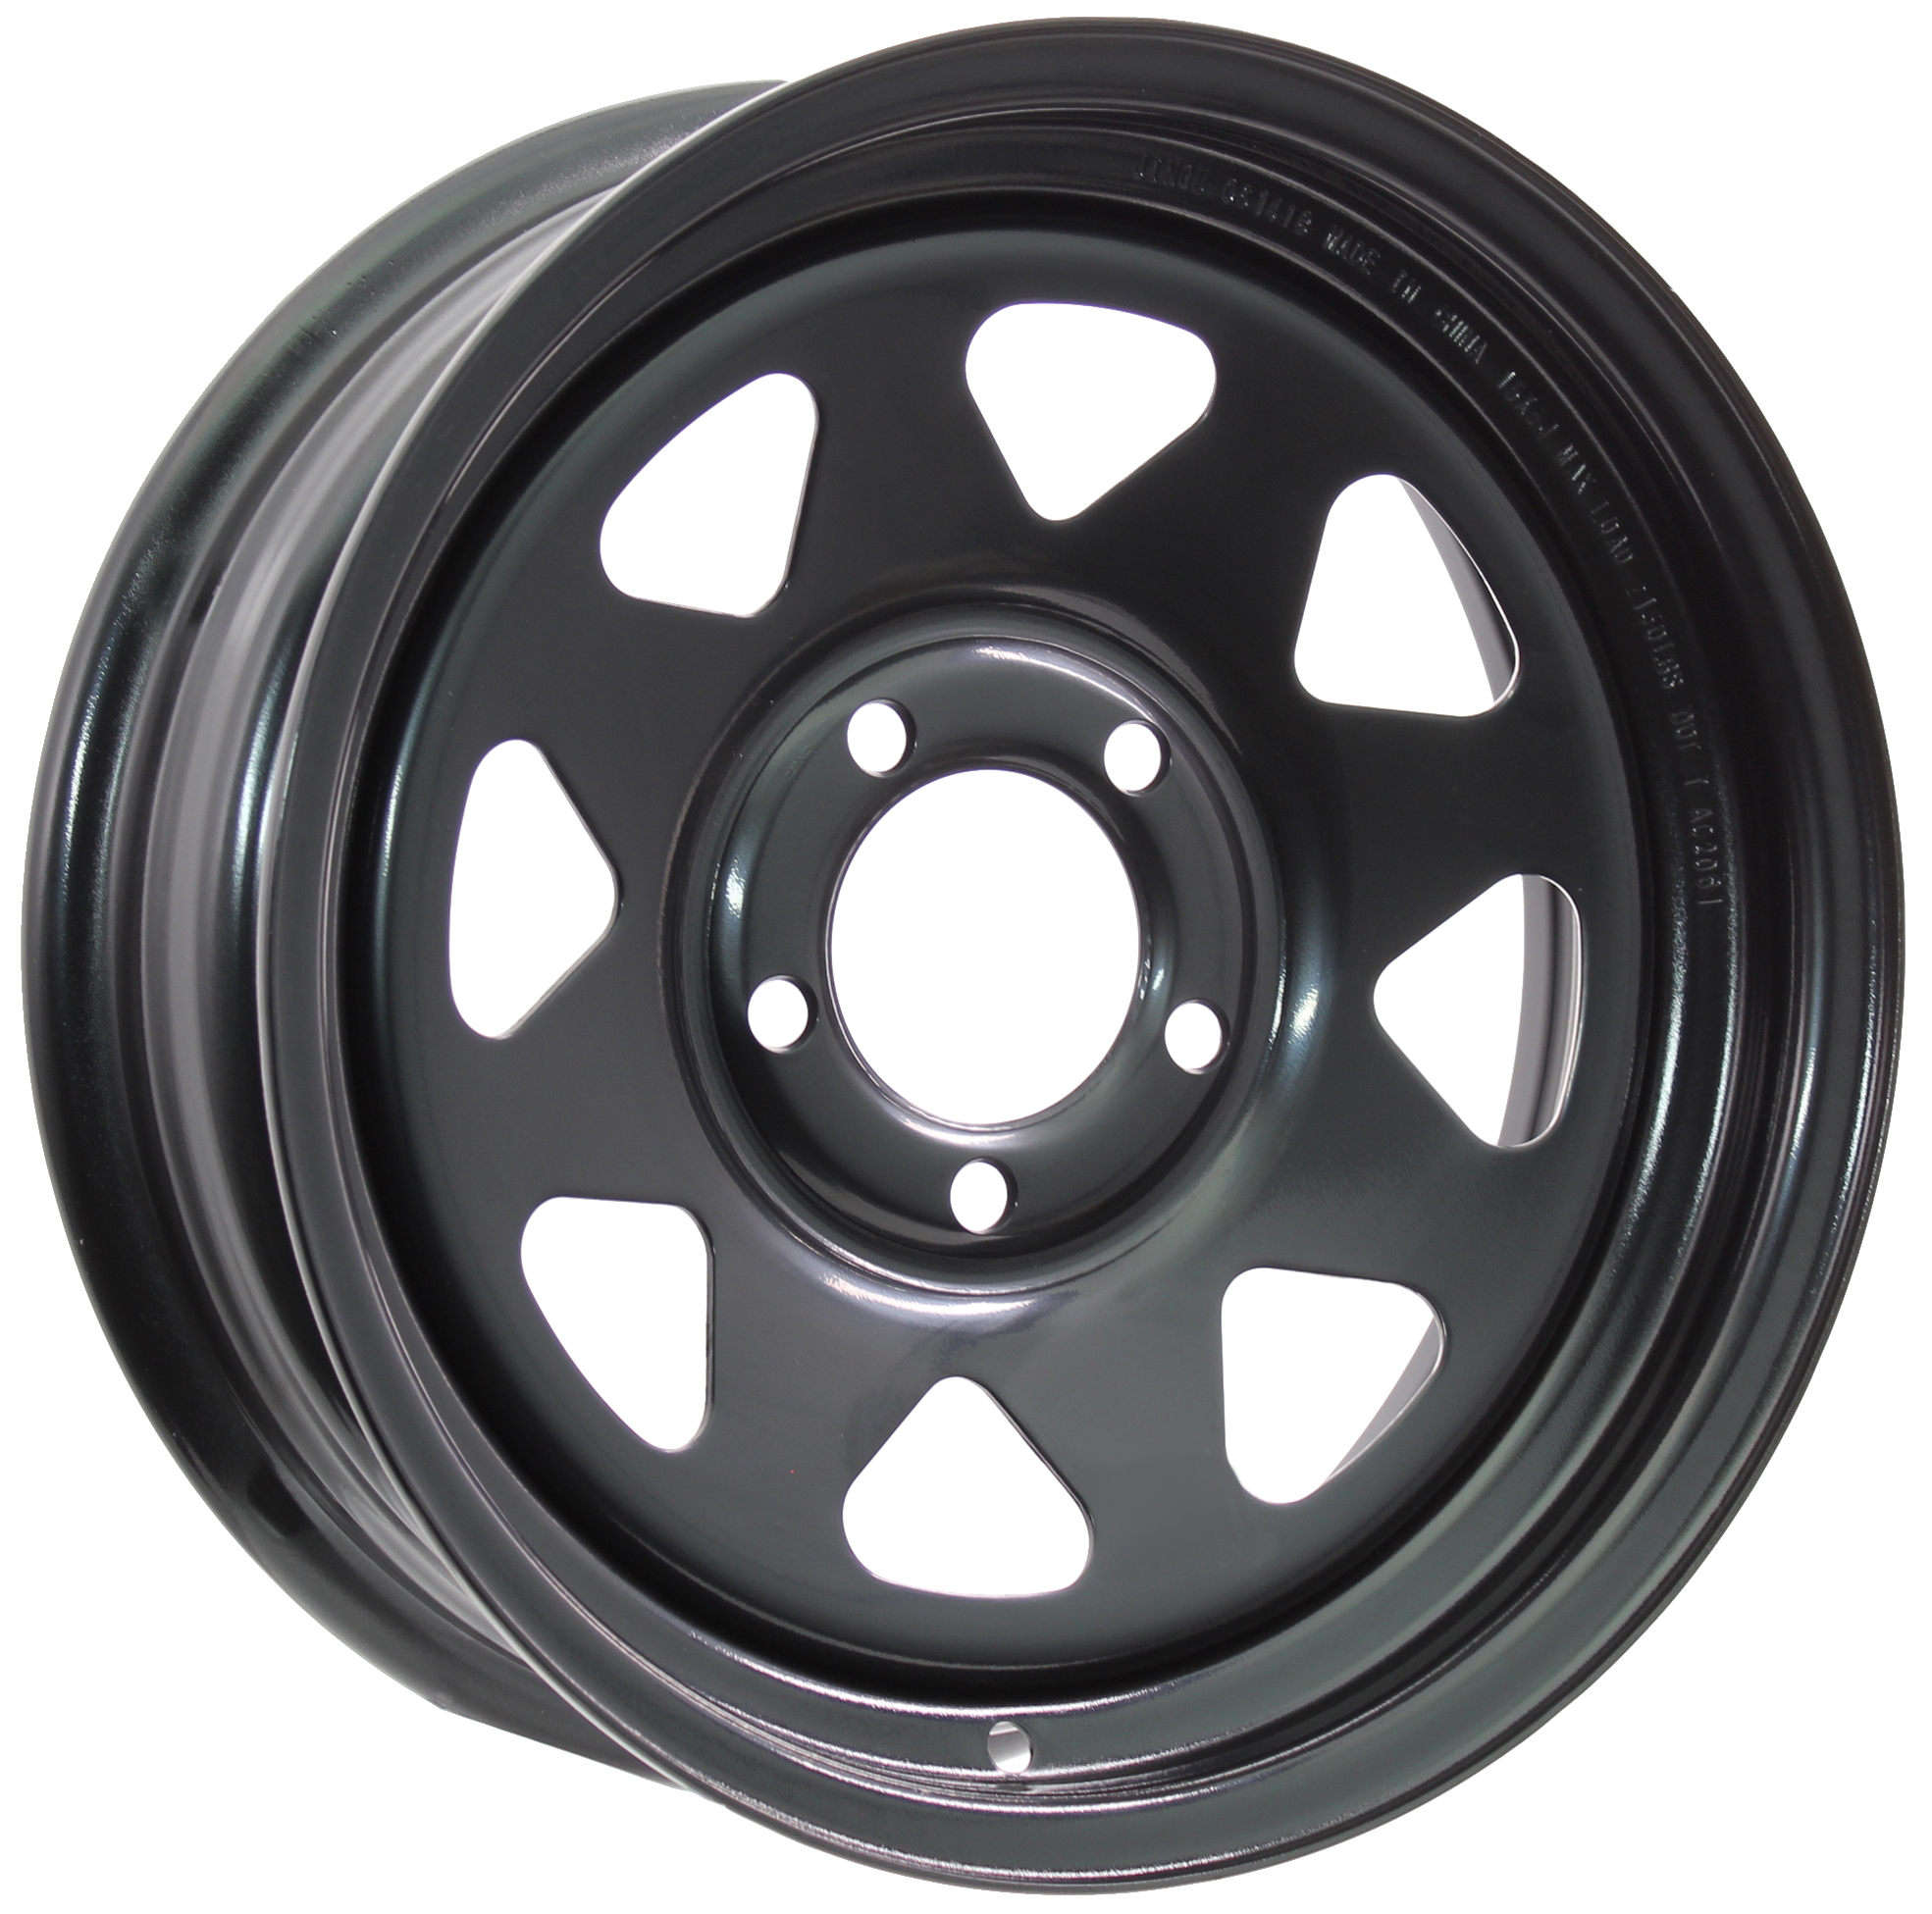 15x5 5-4.5 Black Spoke Steel Trailer Wheel Image